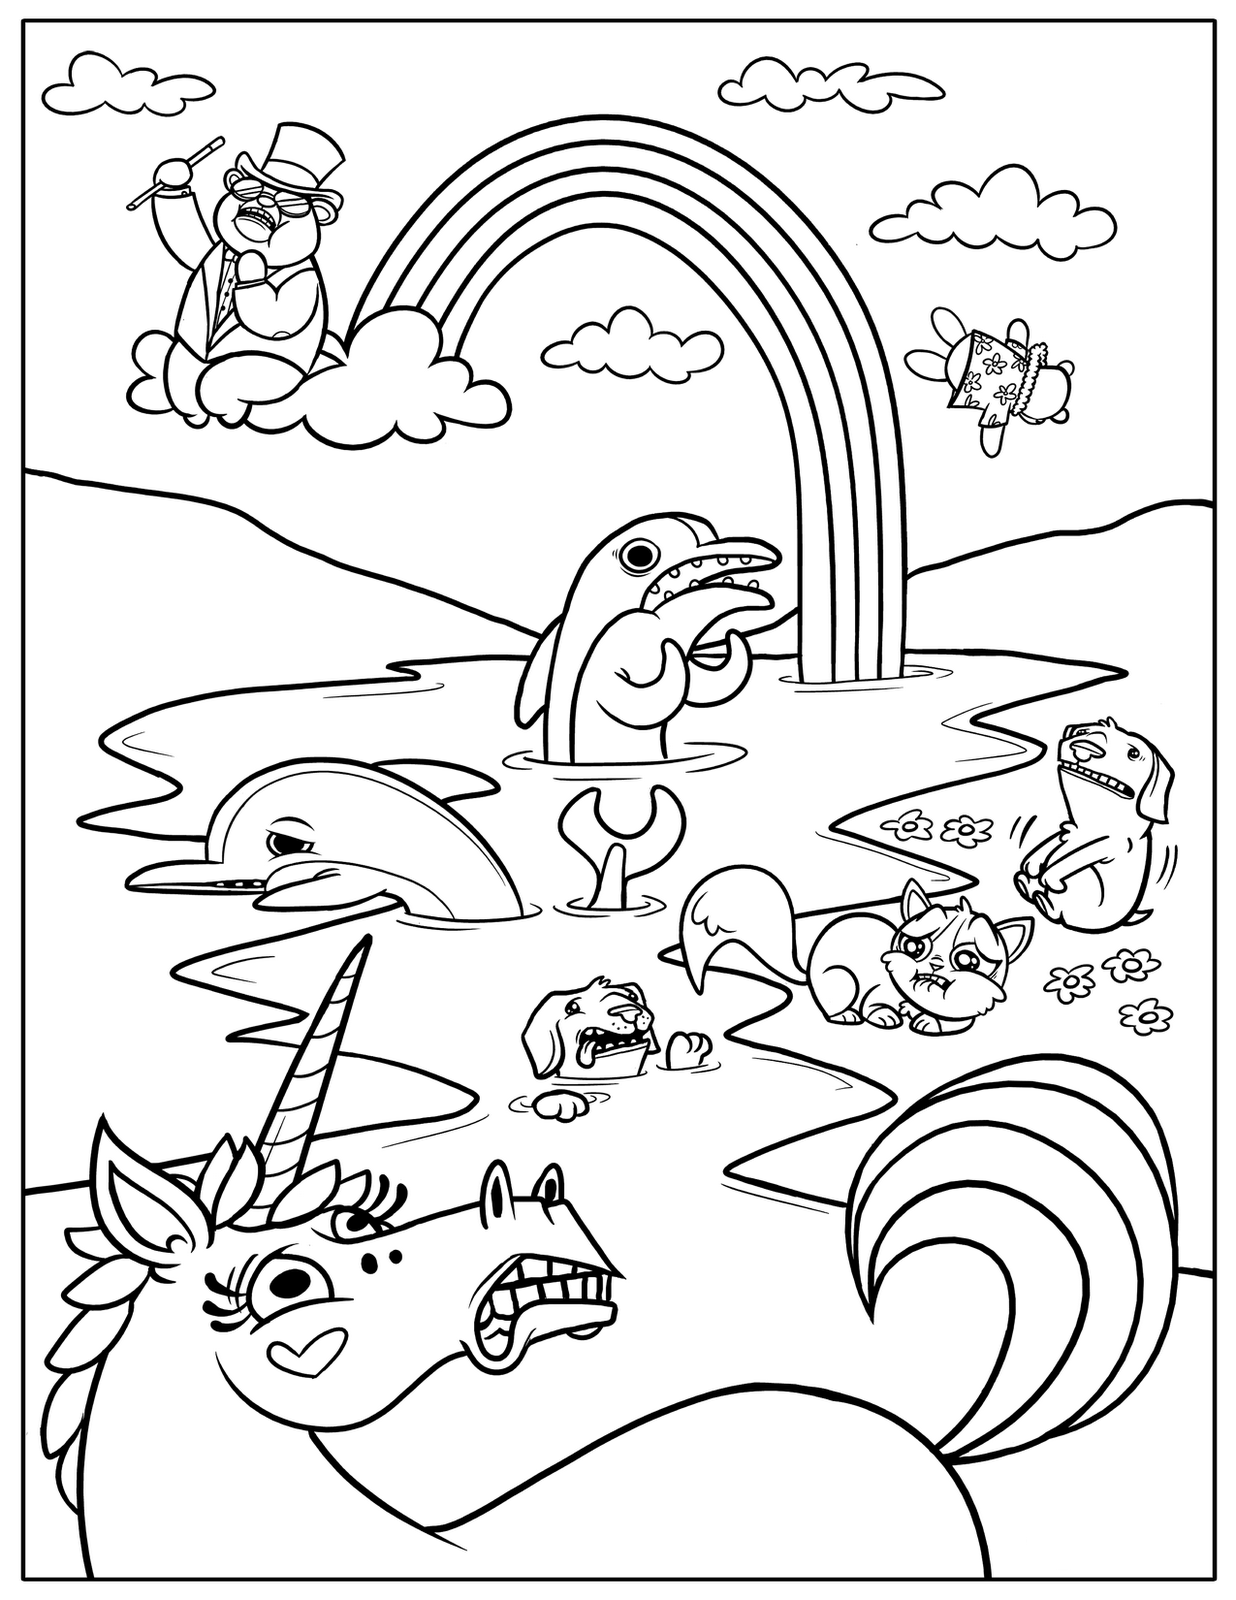 printable coloring monster inc coloring pages to download and print for free printable coloring